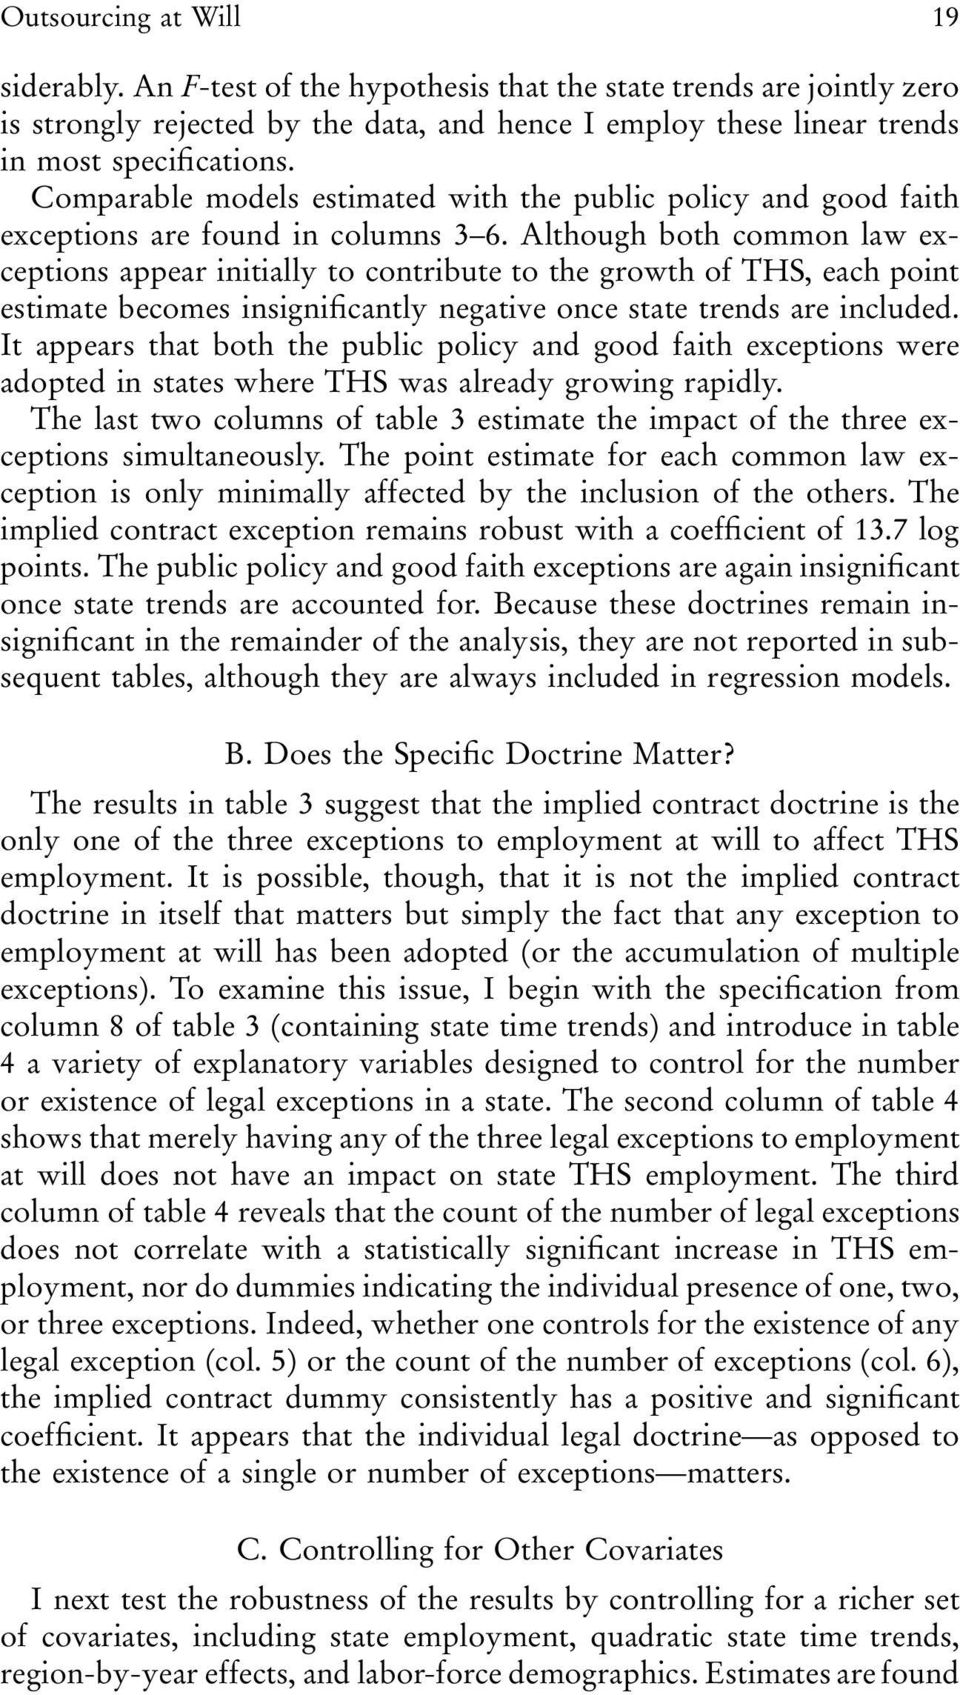 Although both common law exceptions appear initially to contribute to the growth of THS, each point estimate becomes insignificantly negative once state trends are included.